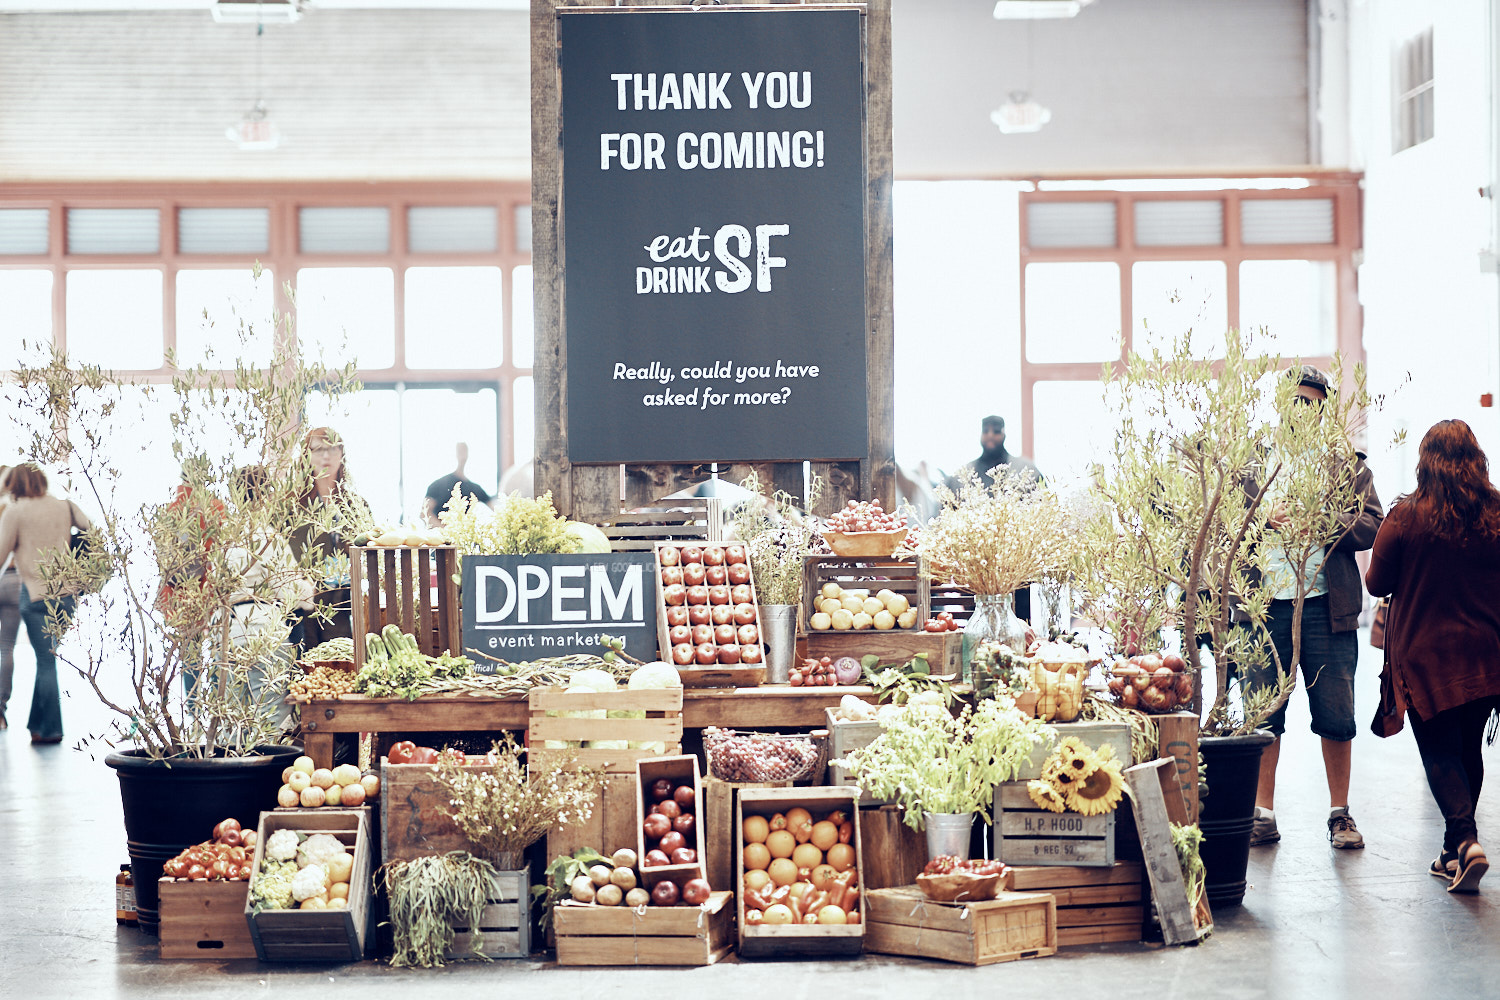 Thank you for coming Sign at Eat Drink SF with an array of veggies on display.